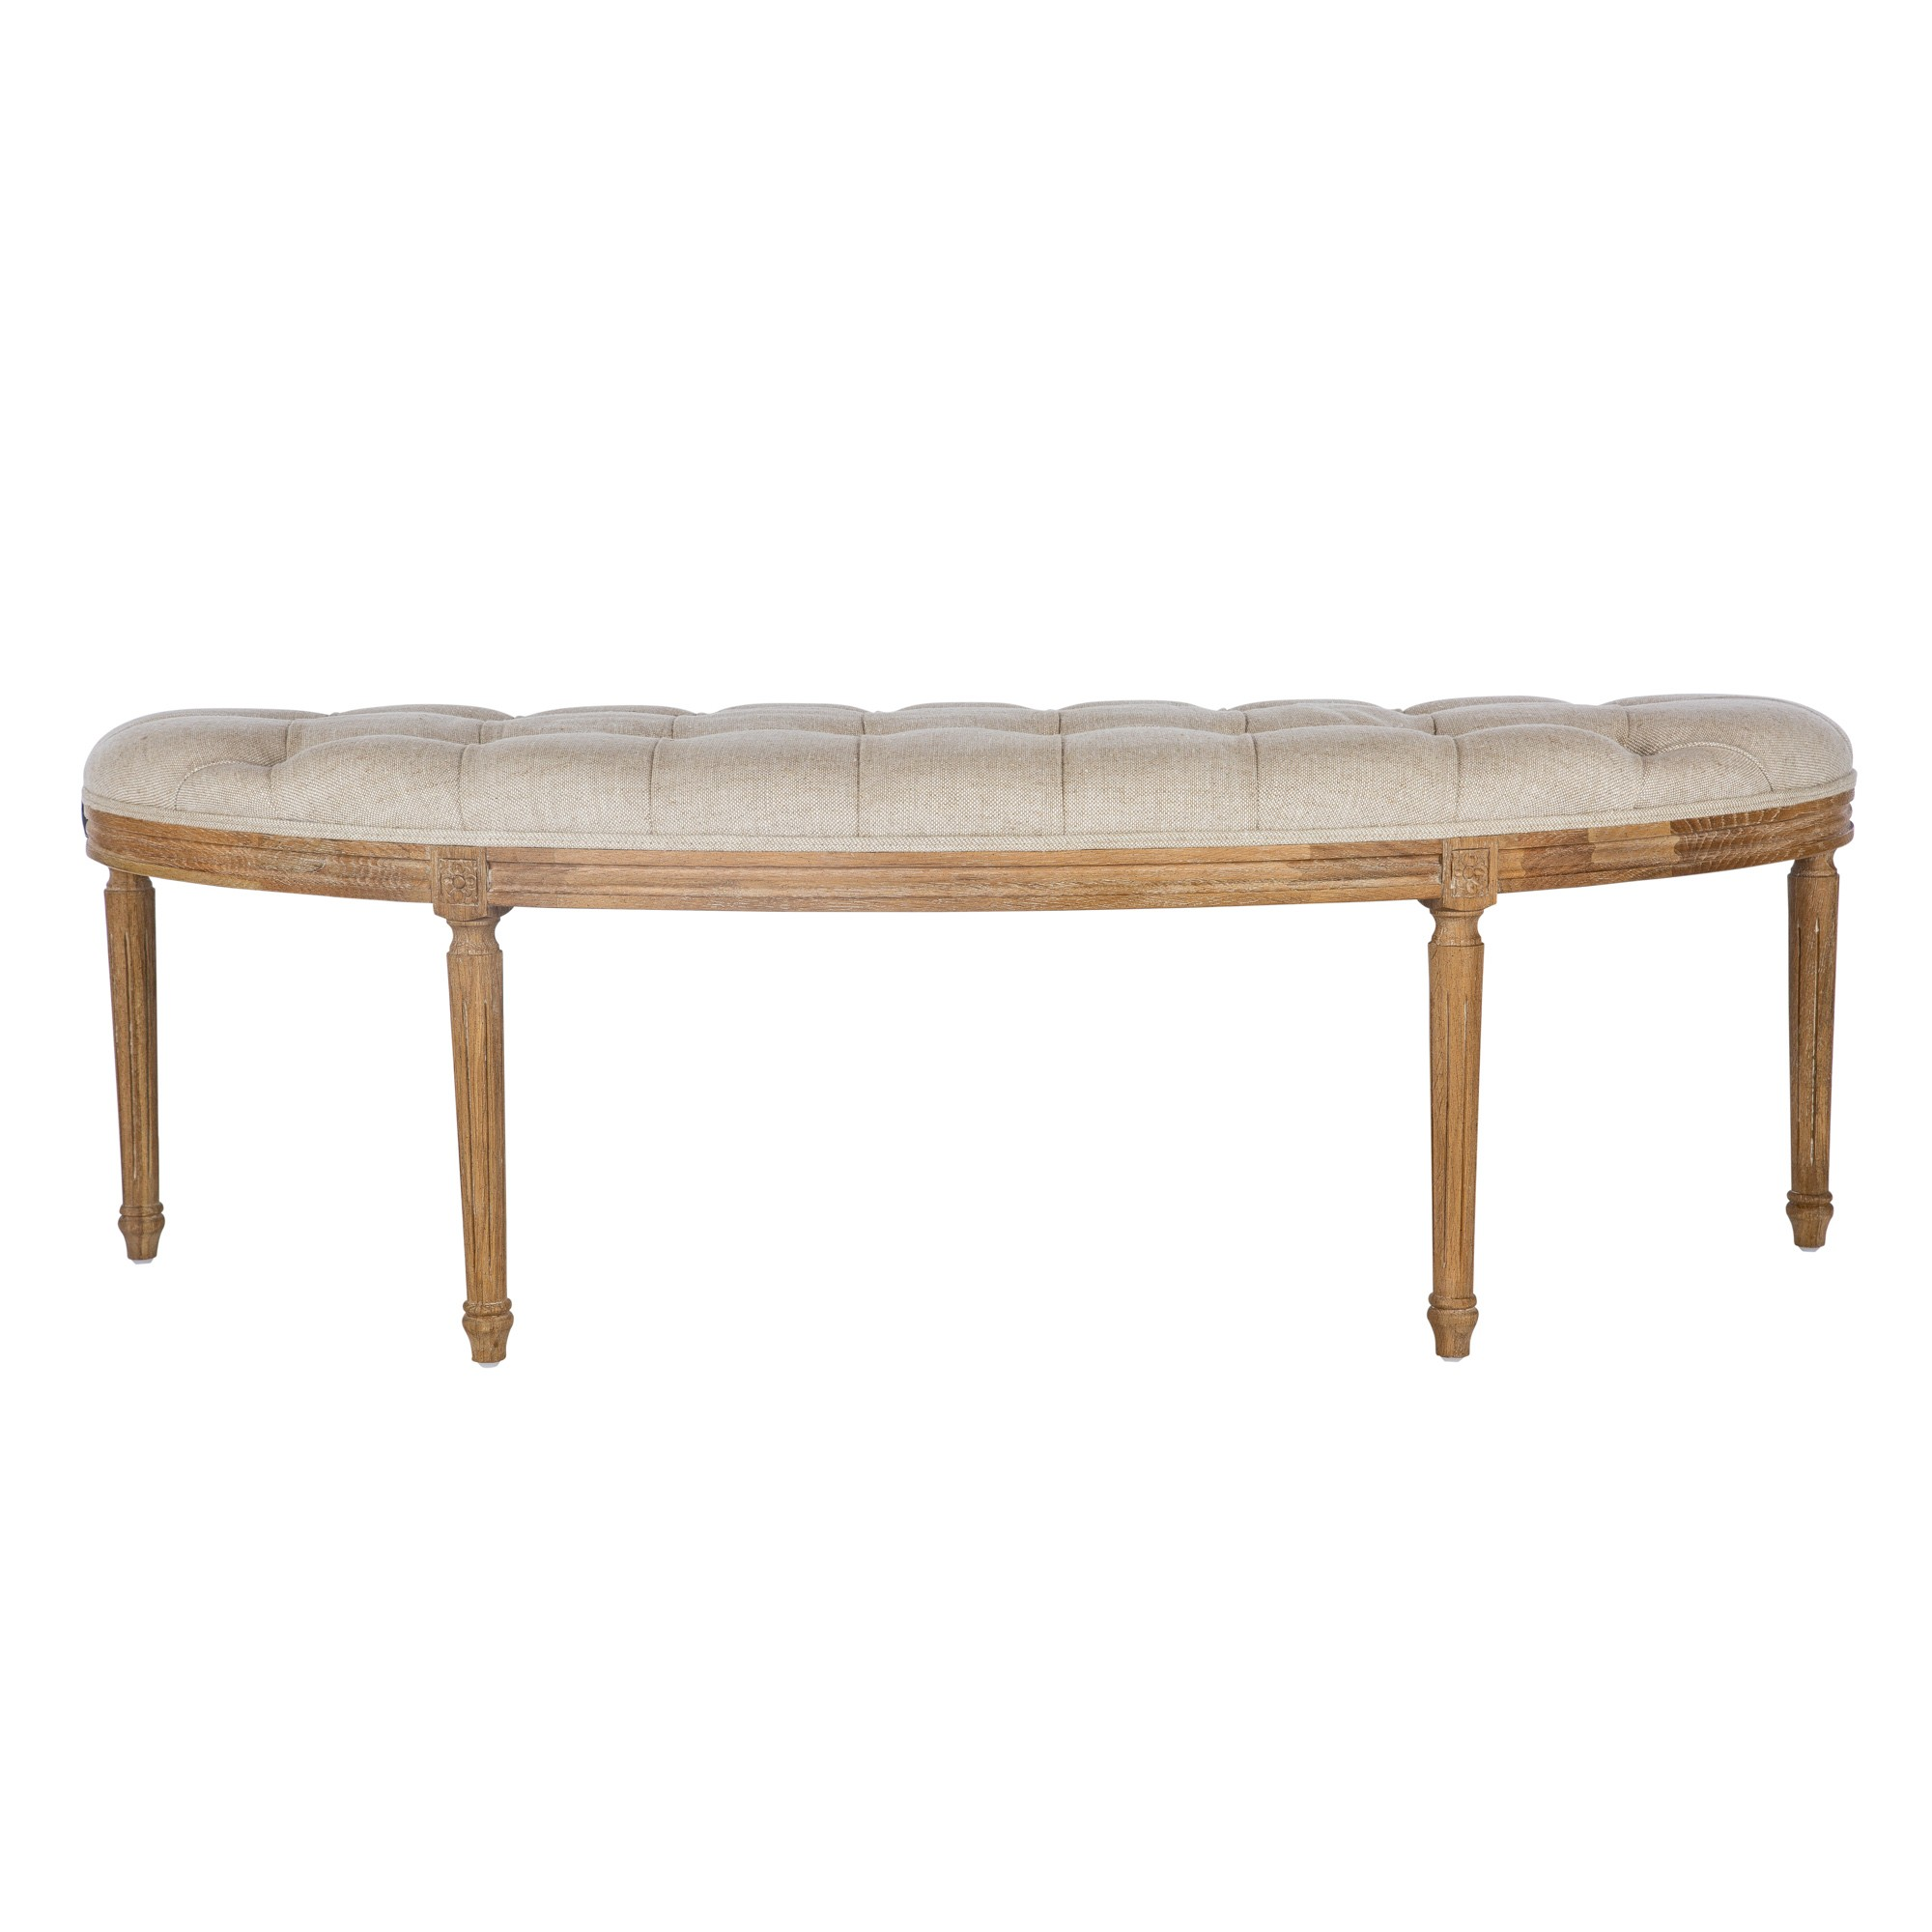 Madeleine Tufted Linen Fabric & Oak Timber Bench, 146cm